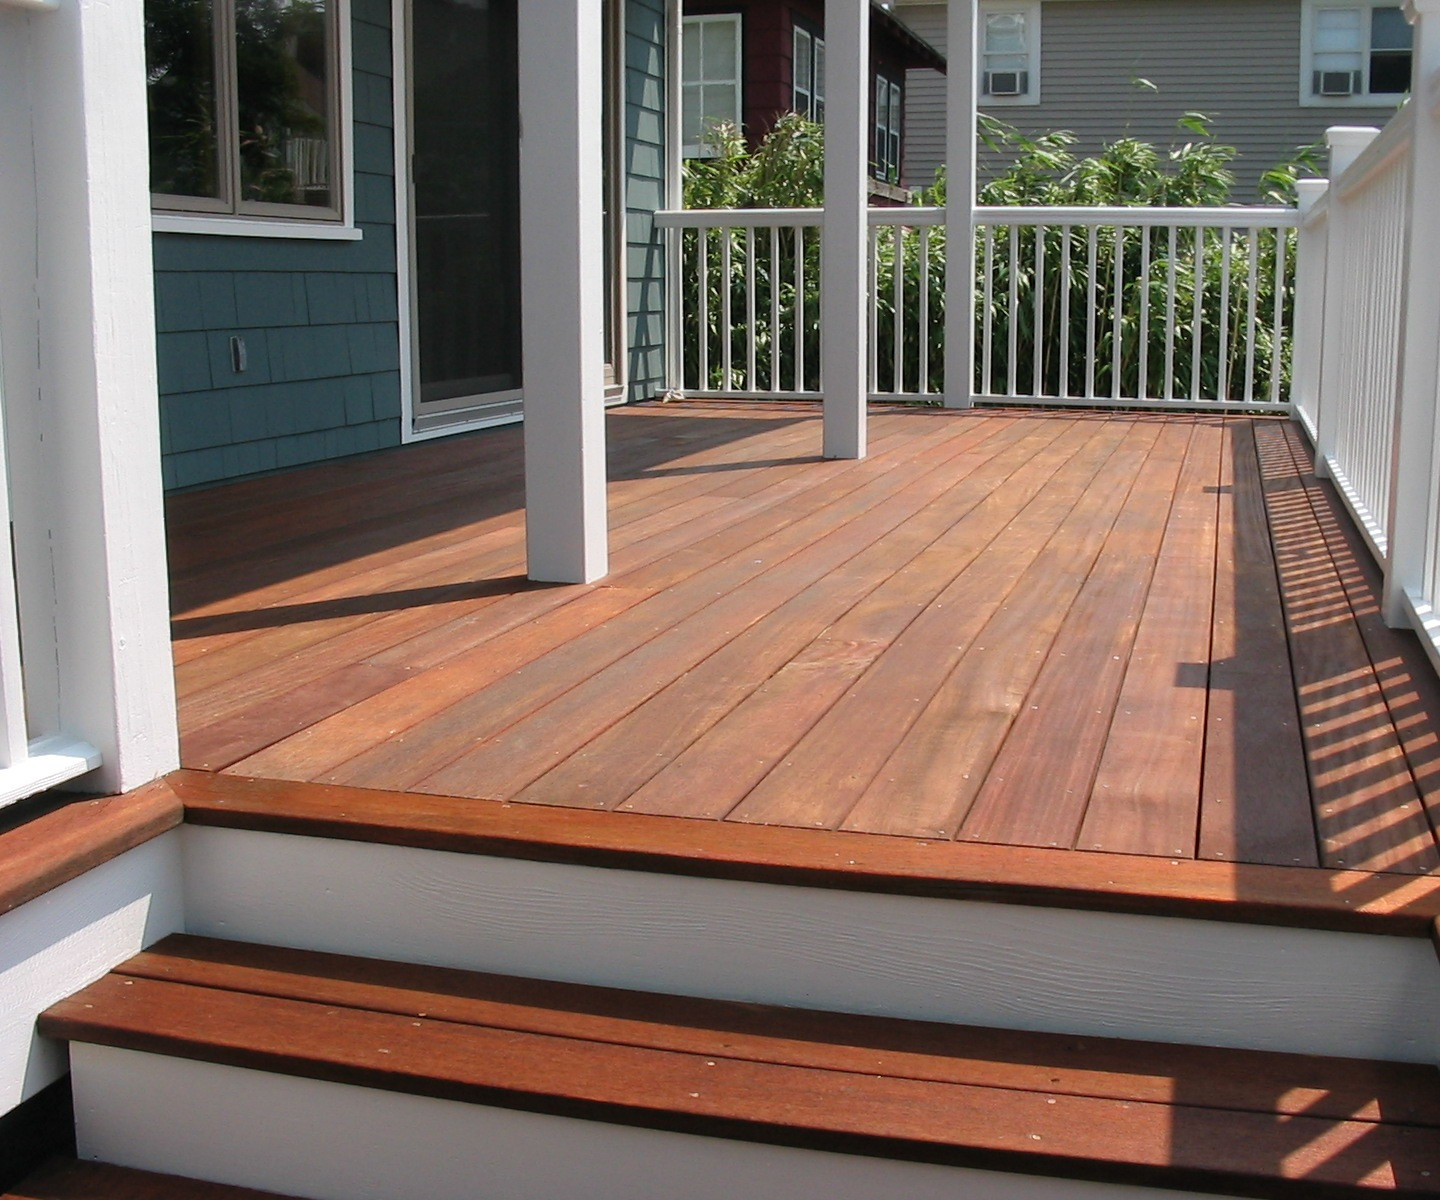 Paint Or Stain Deck  How ten Should You Stain Your Deck – Freeland Painting